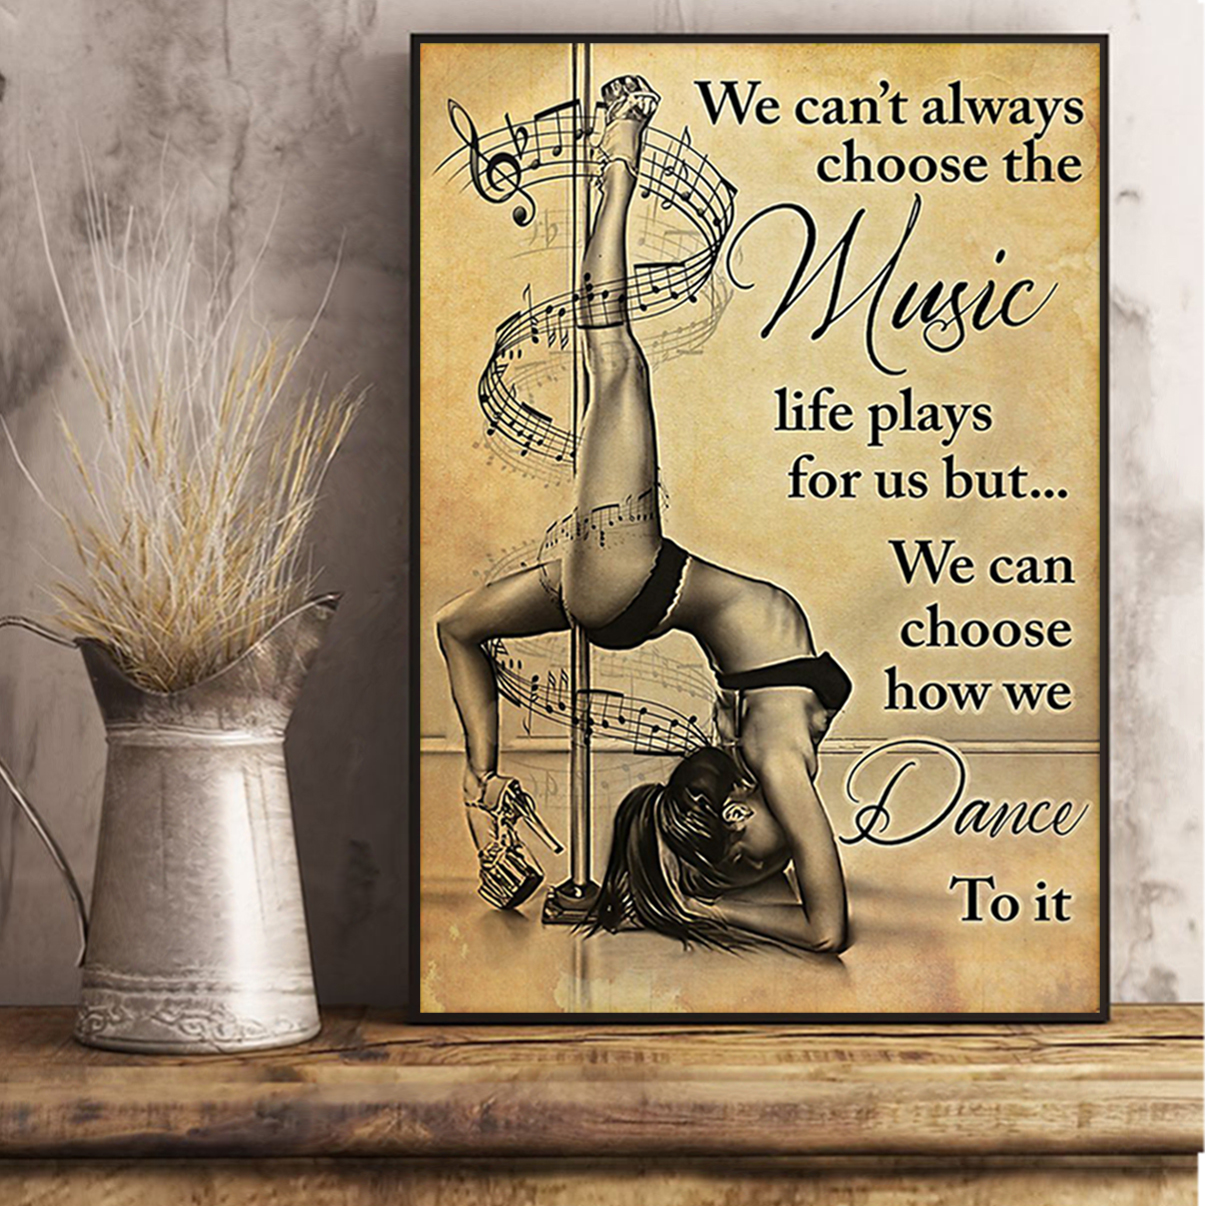 Pole dance we can't alway choose the music poster A1